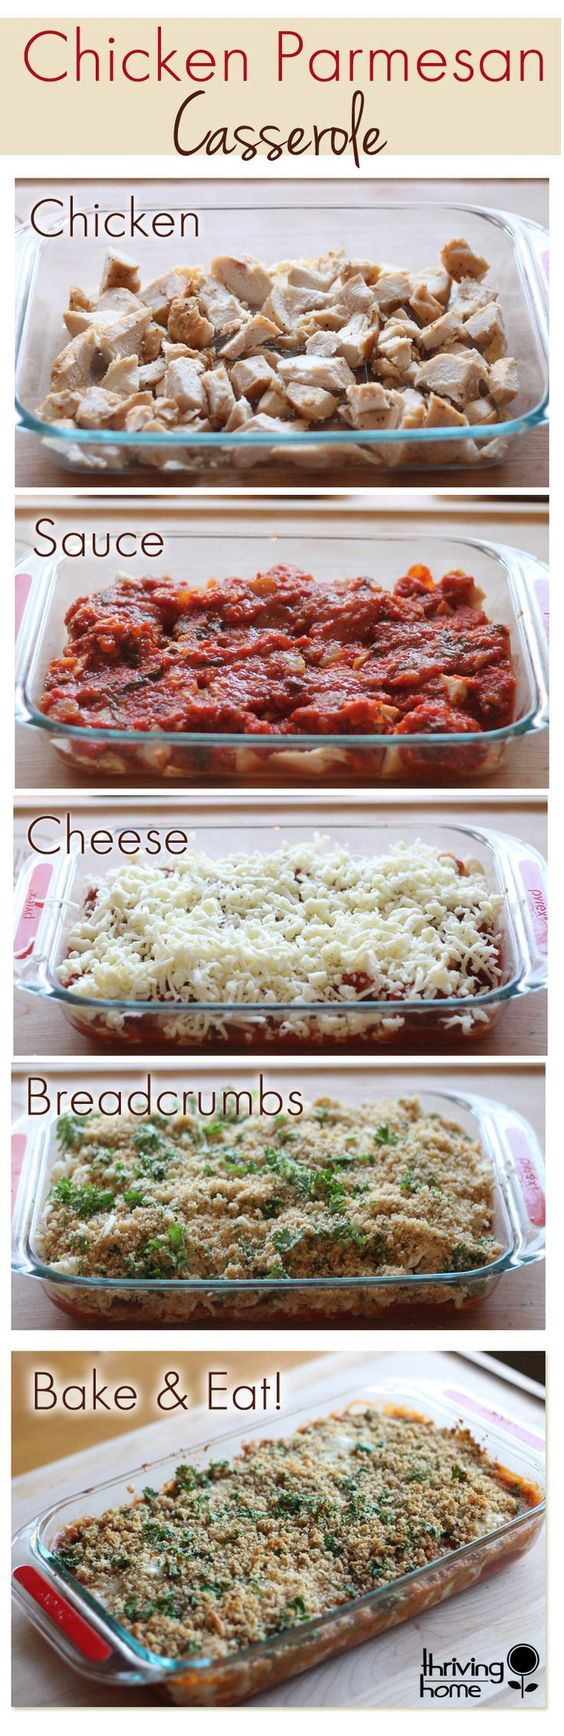 Anyone can make this recipe and it's sure to please the whole family! Freezer meal instructions included, as well.: